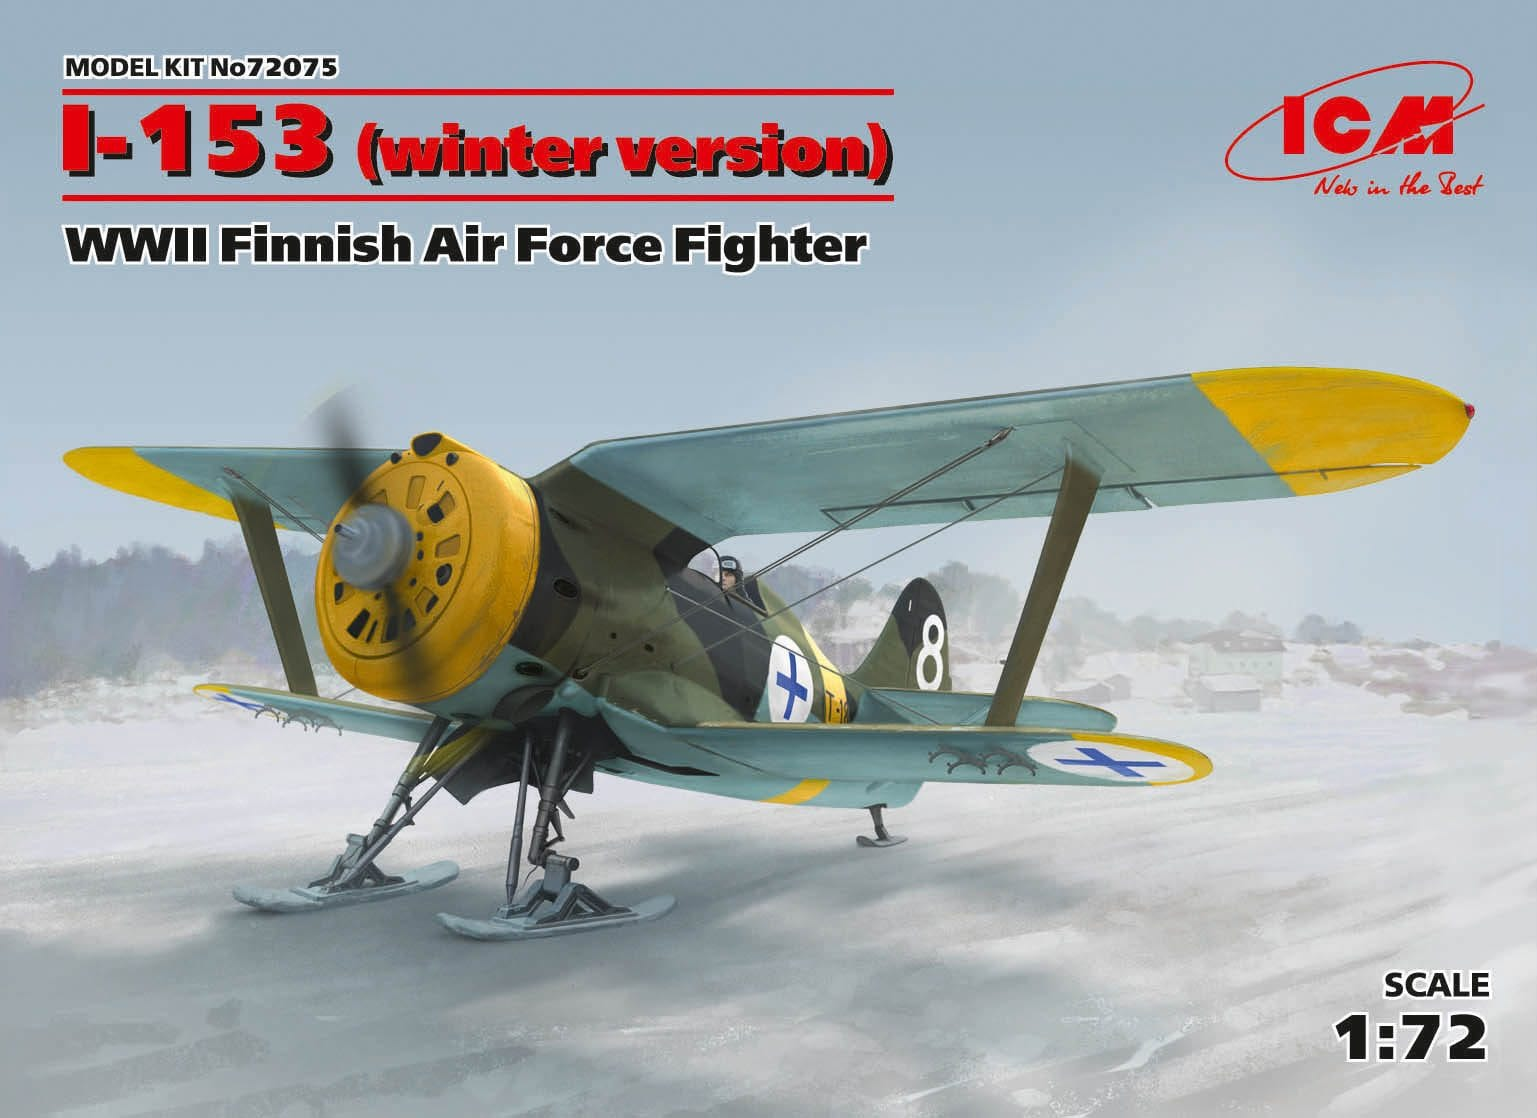 I-153 . WWII Finnish Air Force Fighter (winter version) 1/72 - AK Interactive | The weathering #Brand